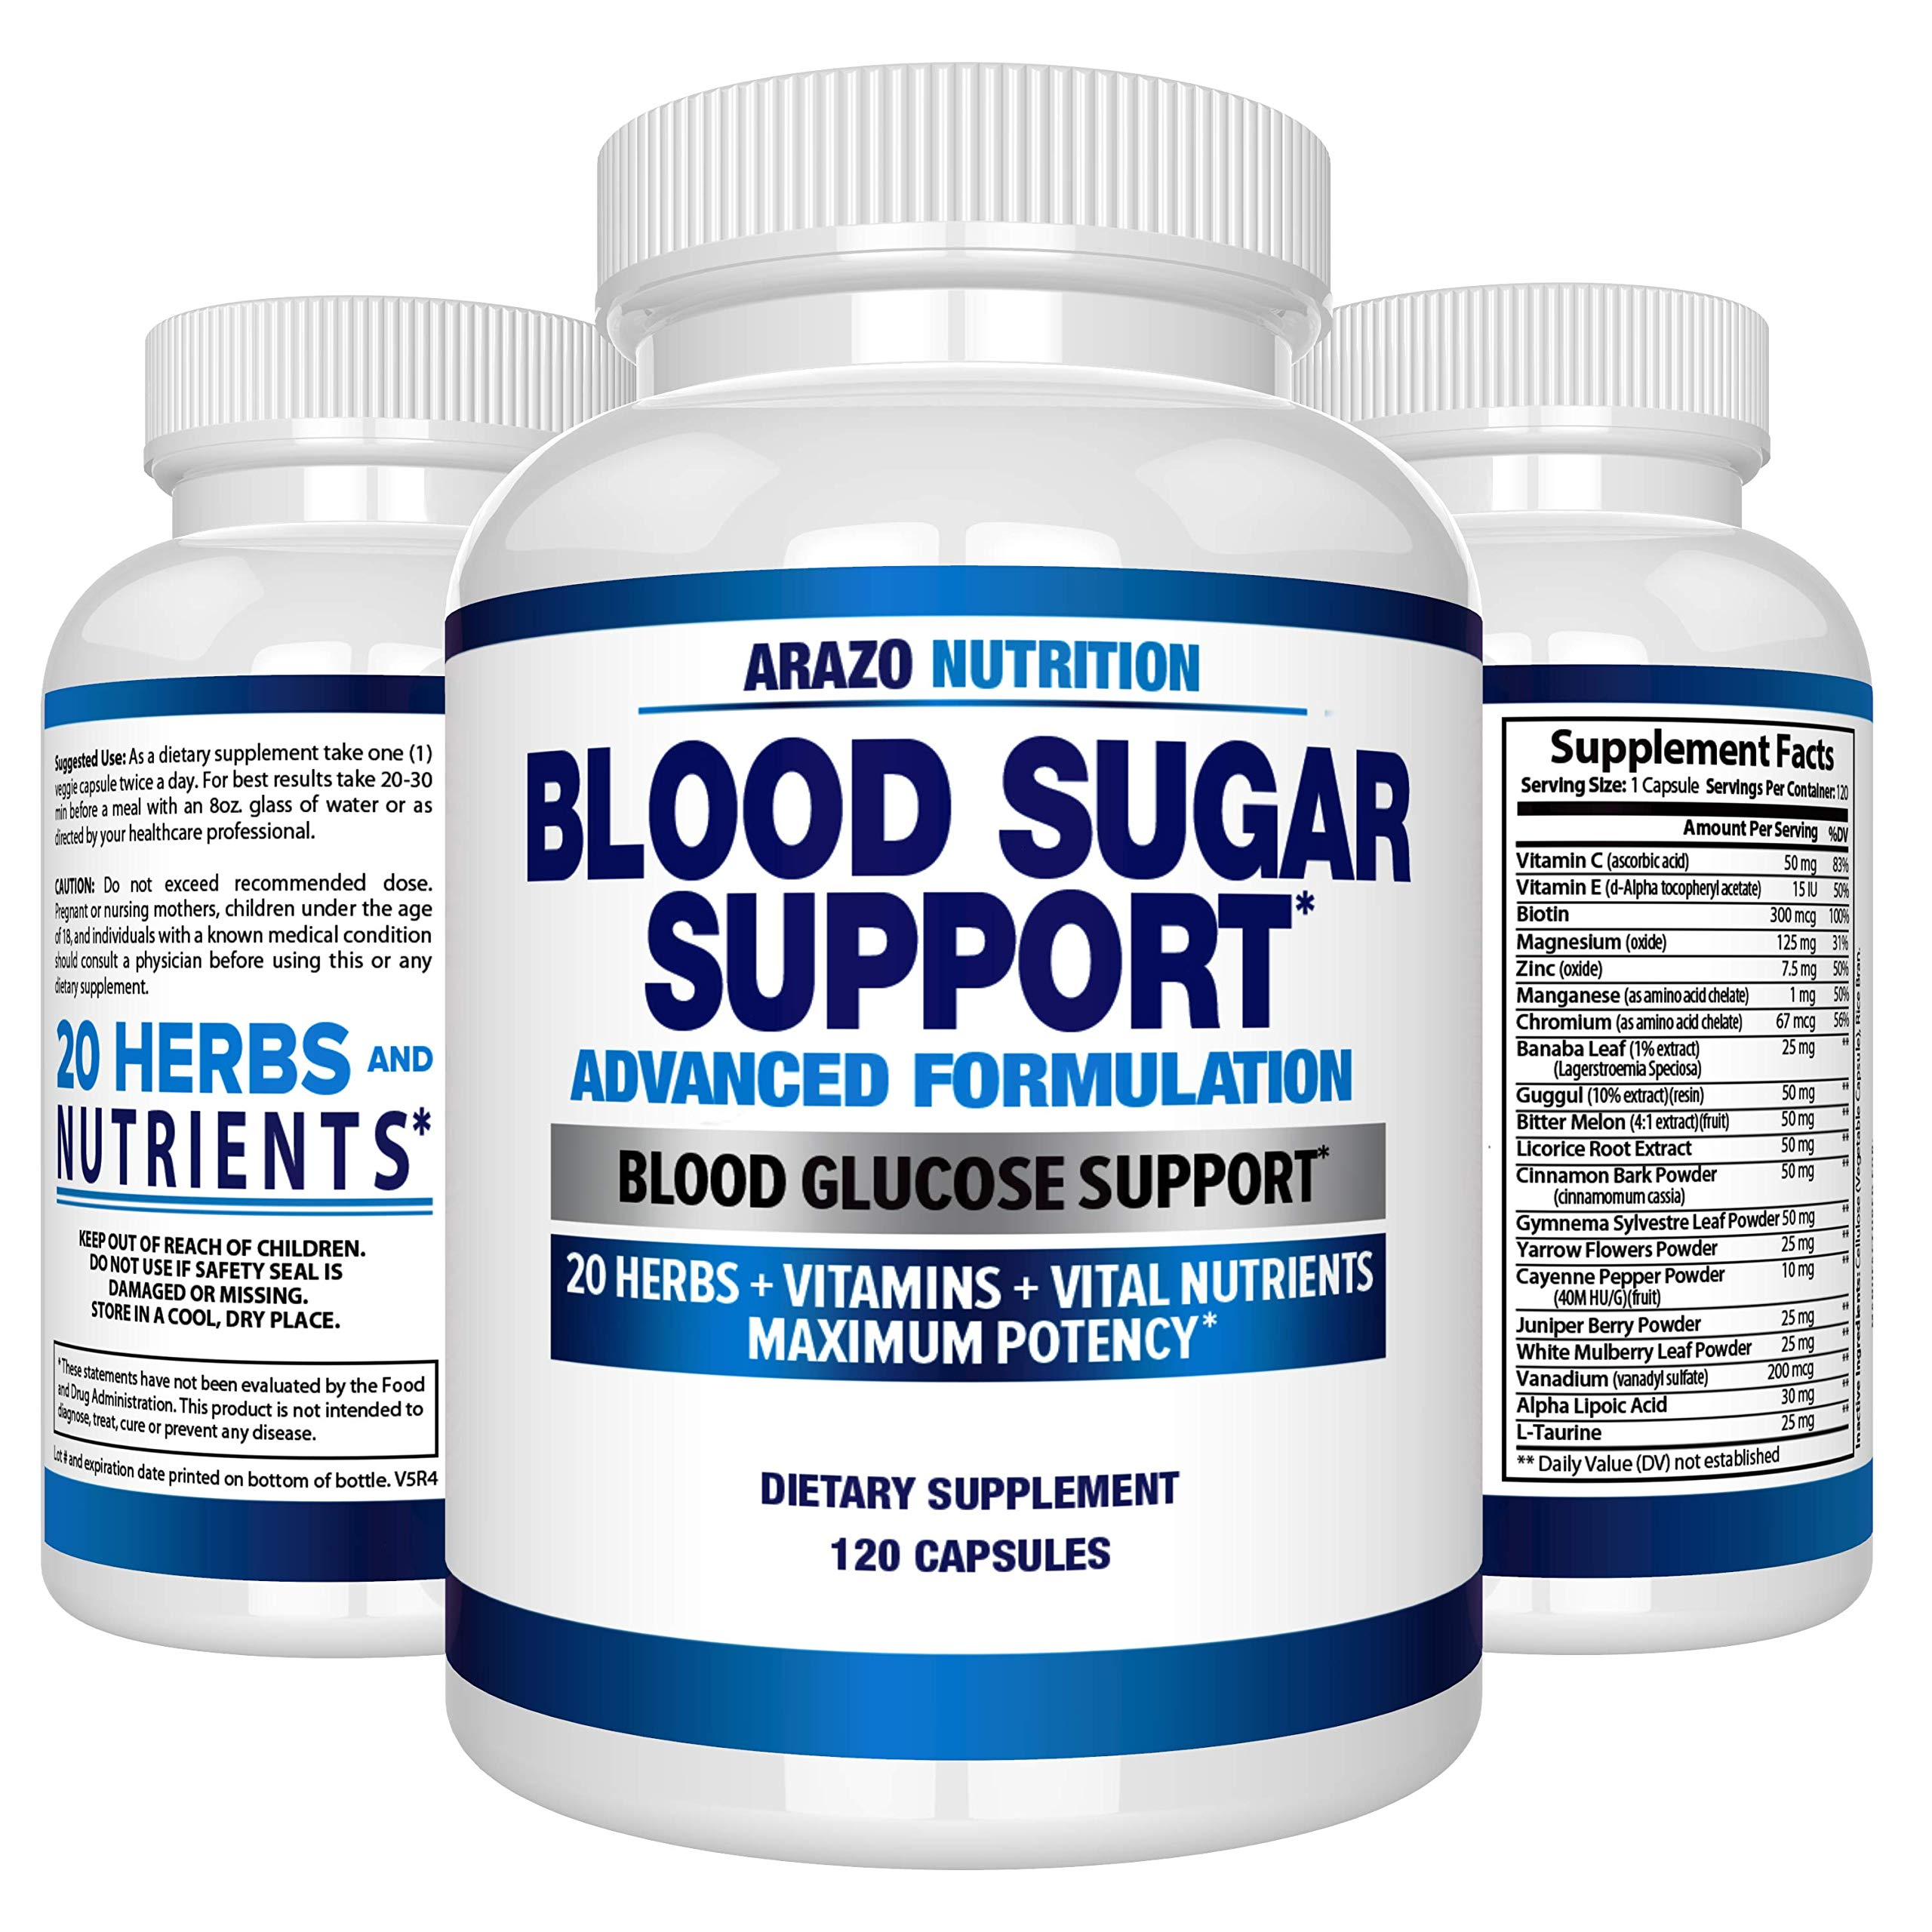 Blood Sugar Support Supplement - 20 HERBS & Multivitamin for Blood Sugar Control with Alpha Lipoic Acid & Cinnamon - 120 Pills - Arazo Nutrition